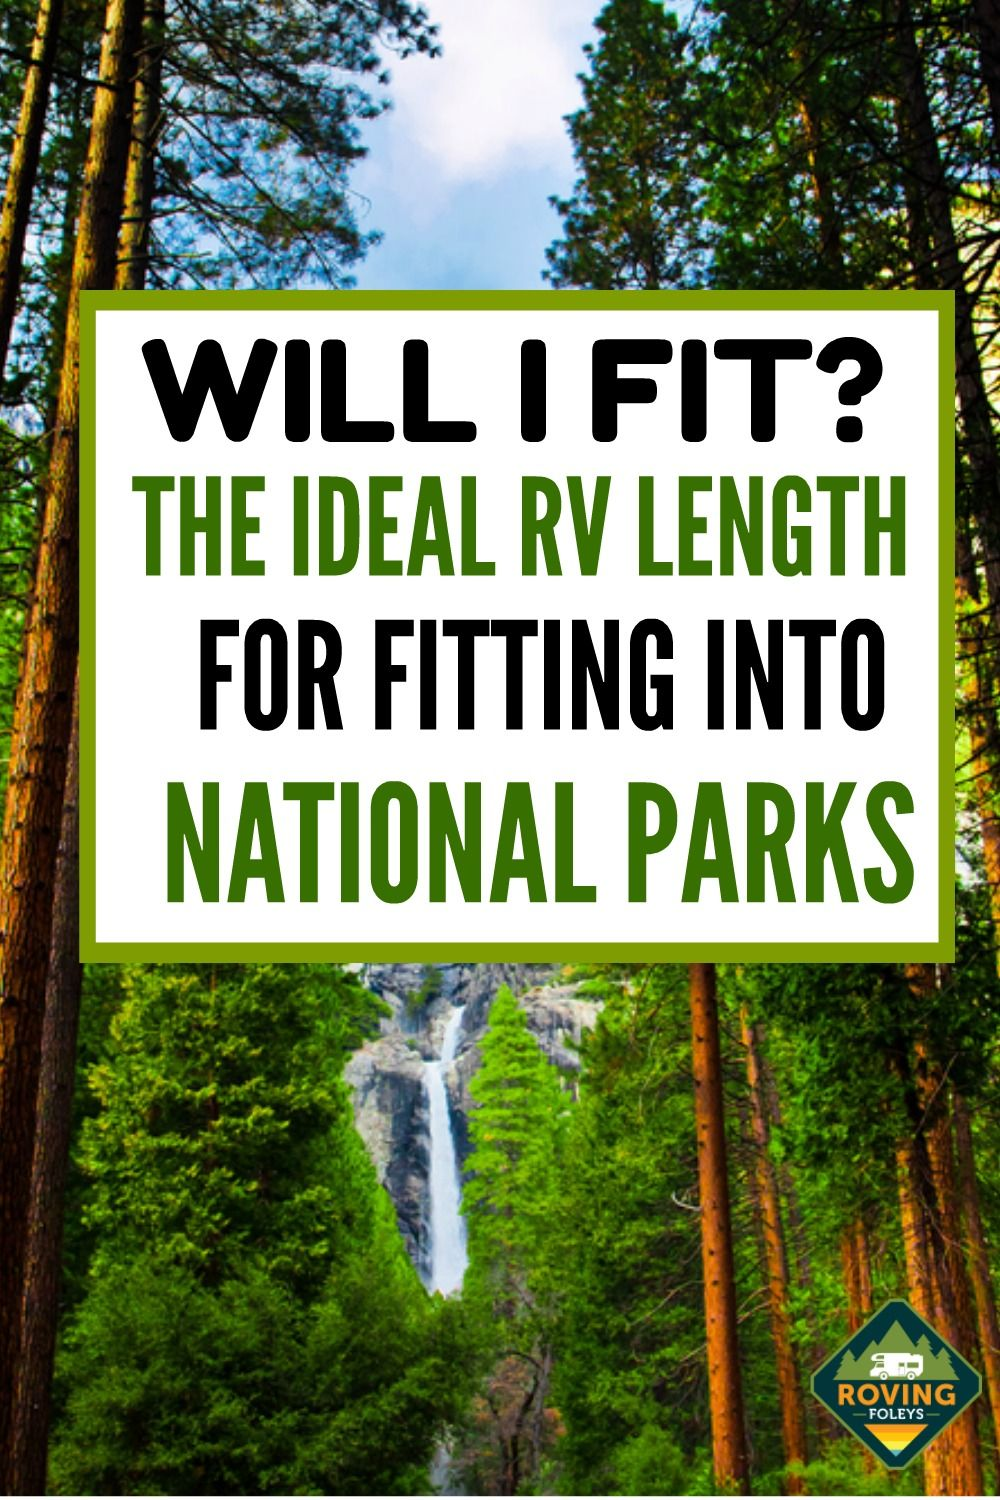 2020 Guide National Parks Rv Length Every Park The Roving Foley S In 2020 Rv Road Trip Rv Parks And Campgrounds Travel Trailer Camping